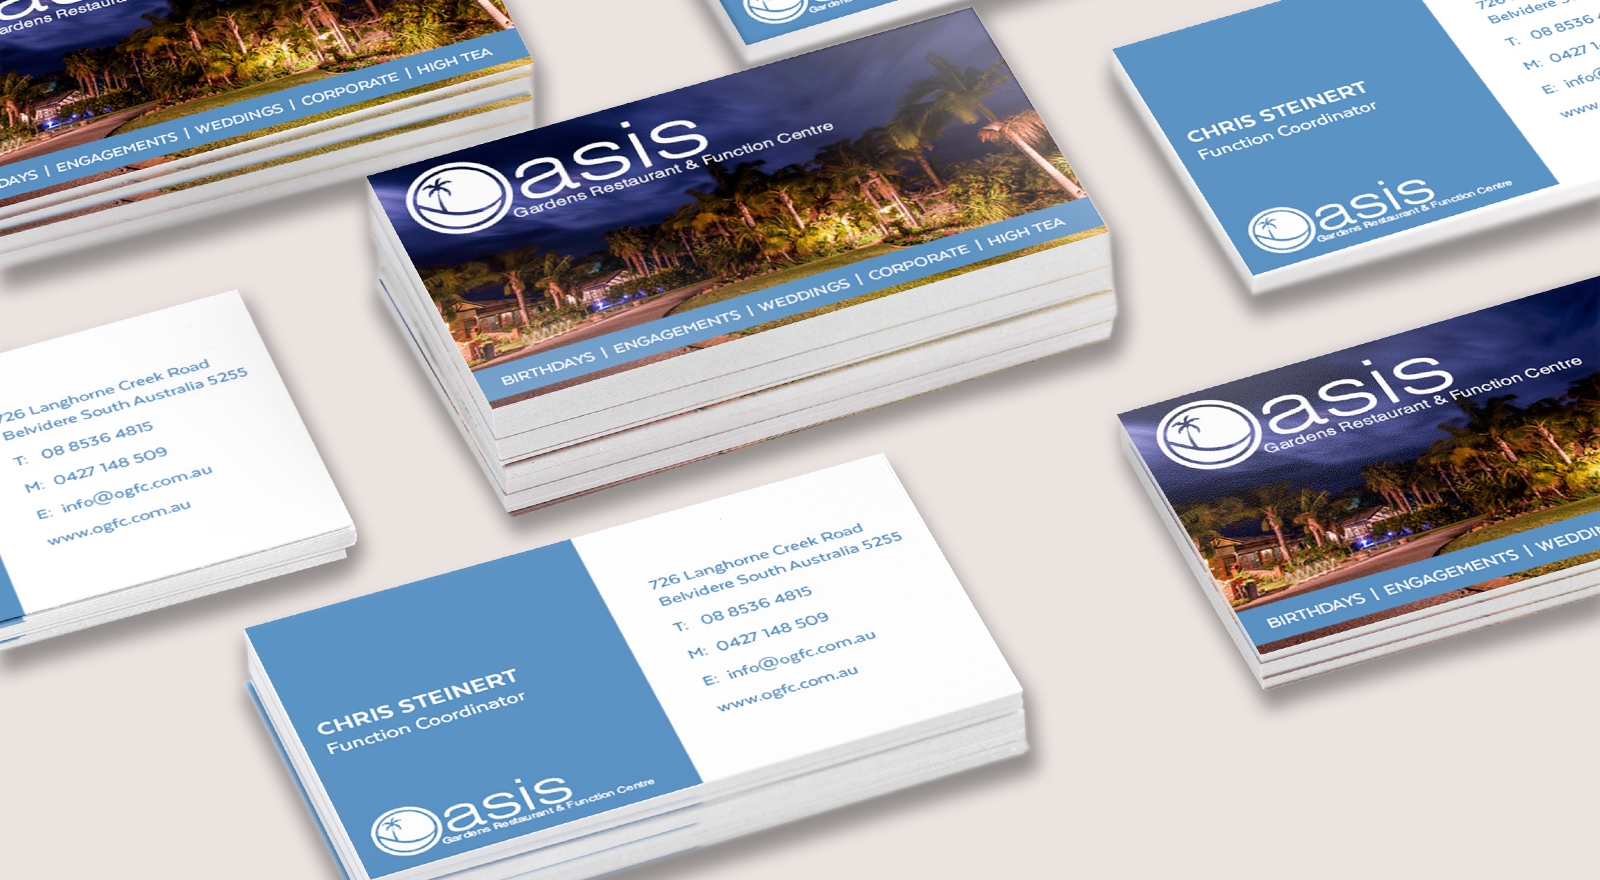 Business Card design for Oasis Gardens Restaurant